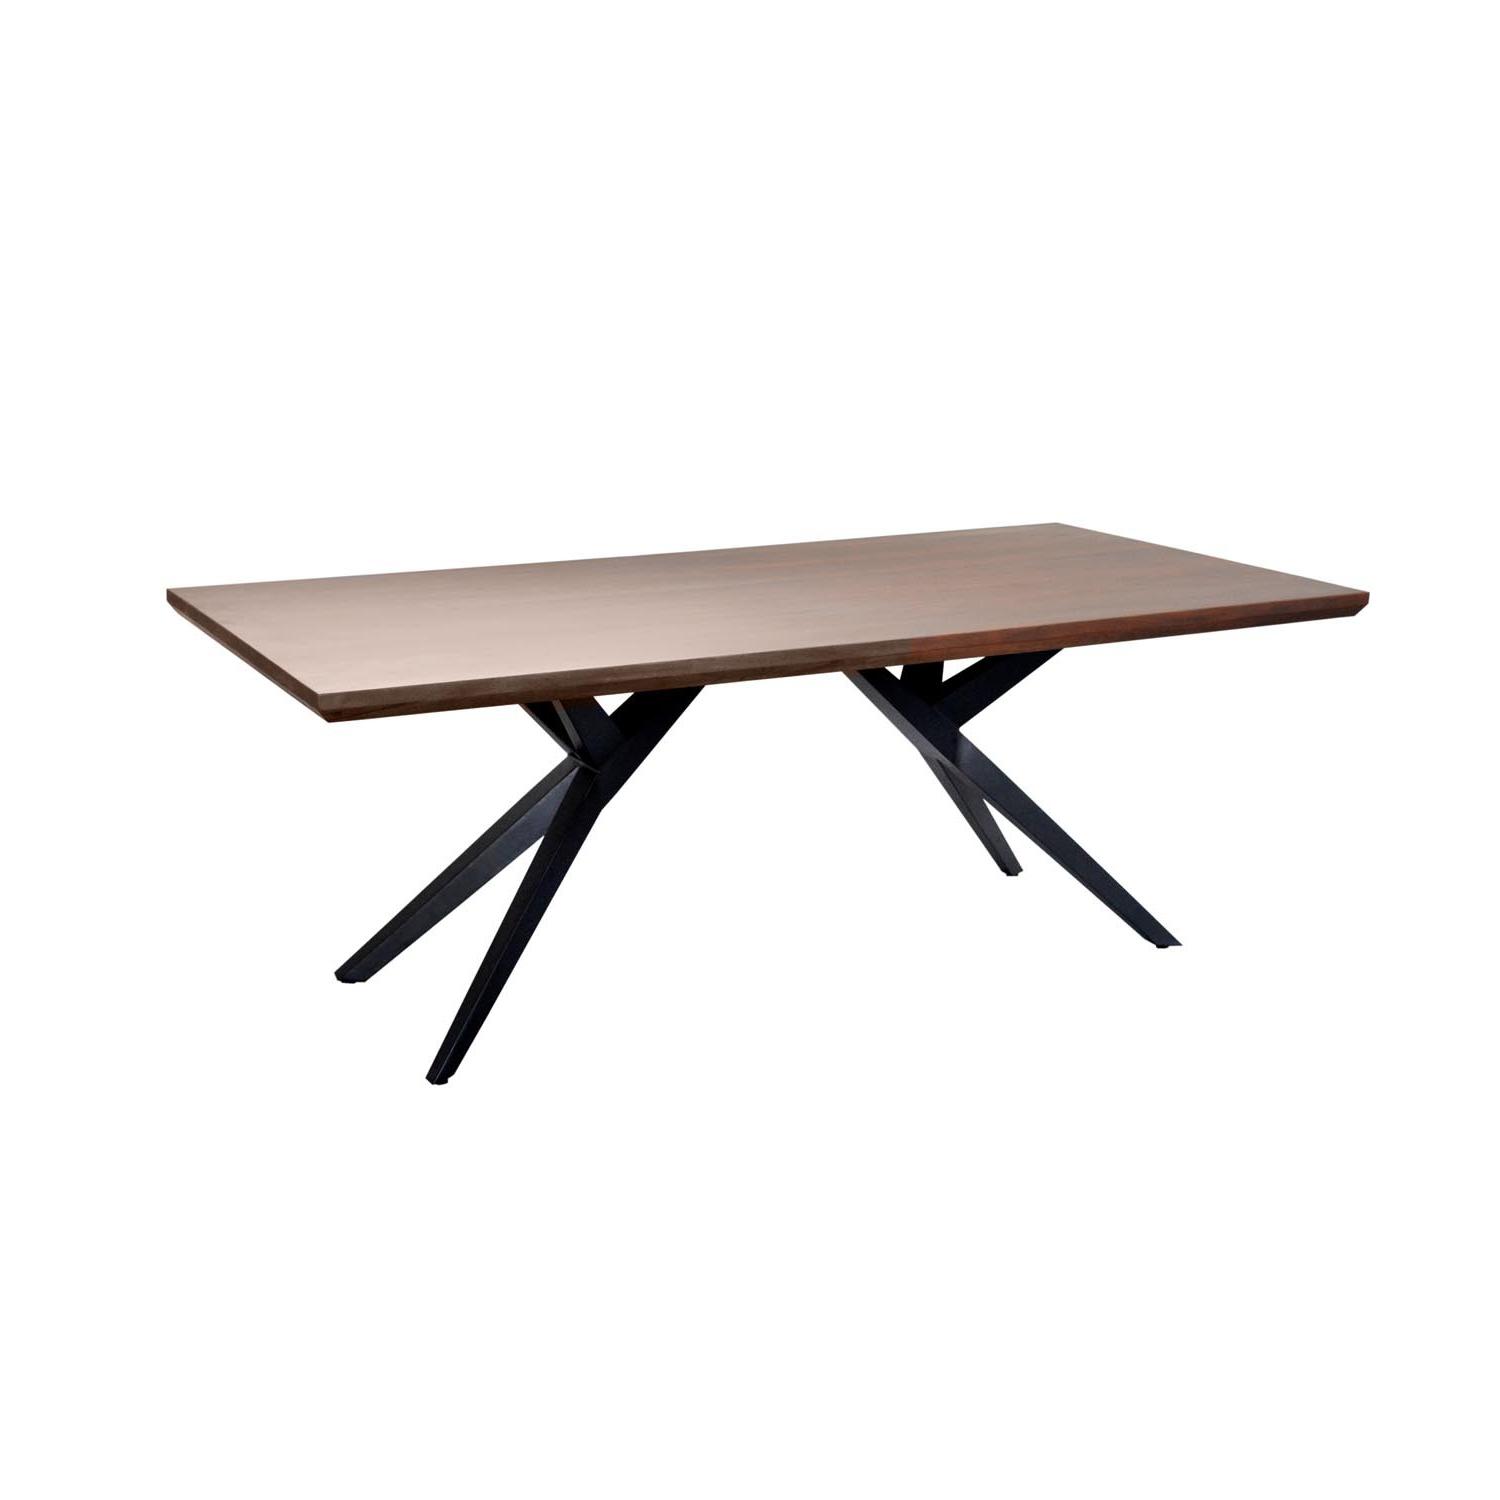 Cdi Furniture Pertaining To Acacia Wood Dining Tables With Sheet Metal Base (View 4 of 30)